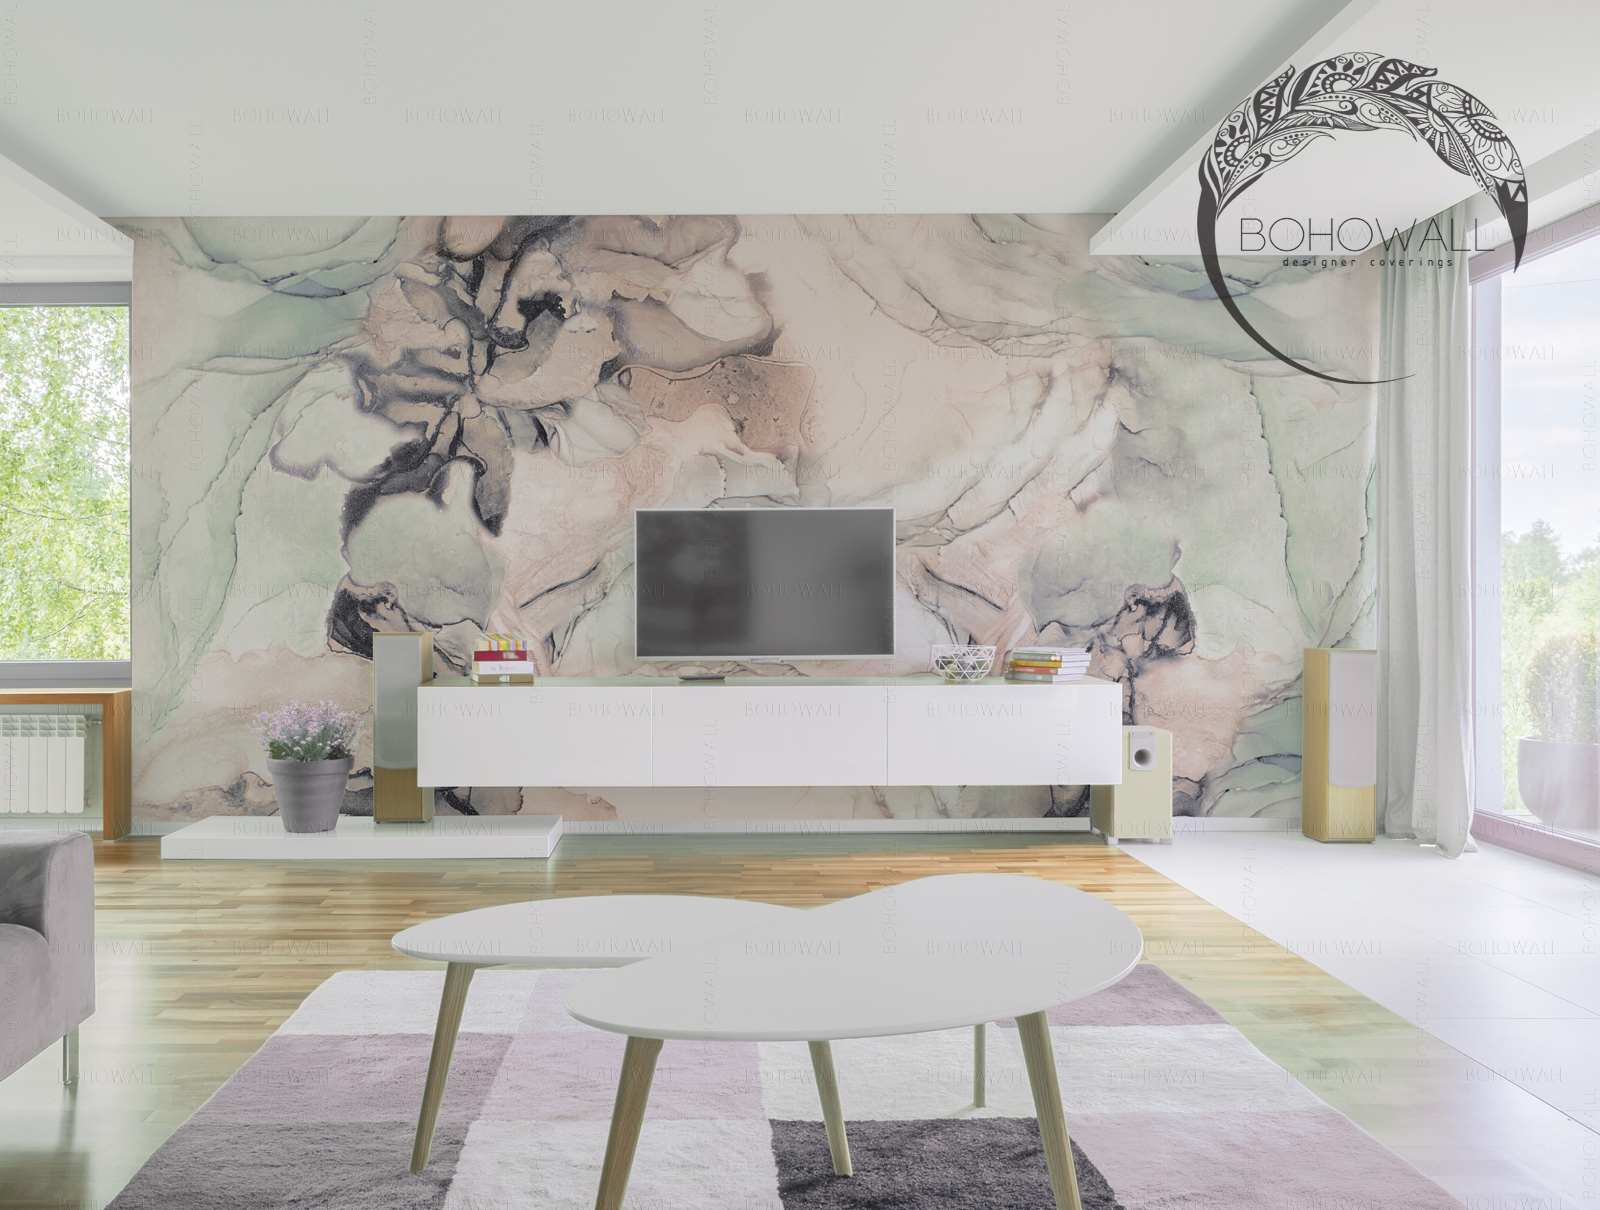 interier_freska_fancy marble_Bohowall_s